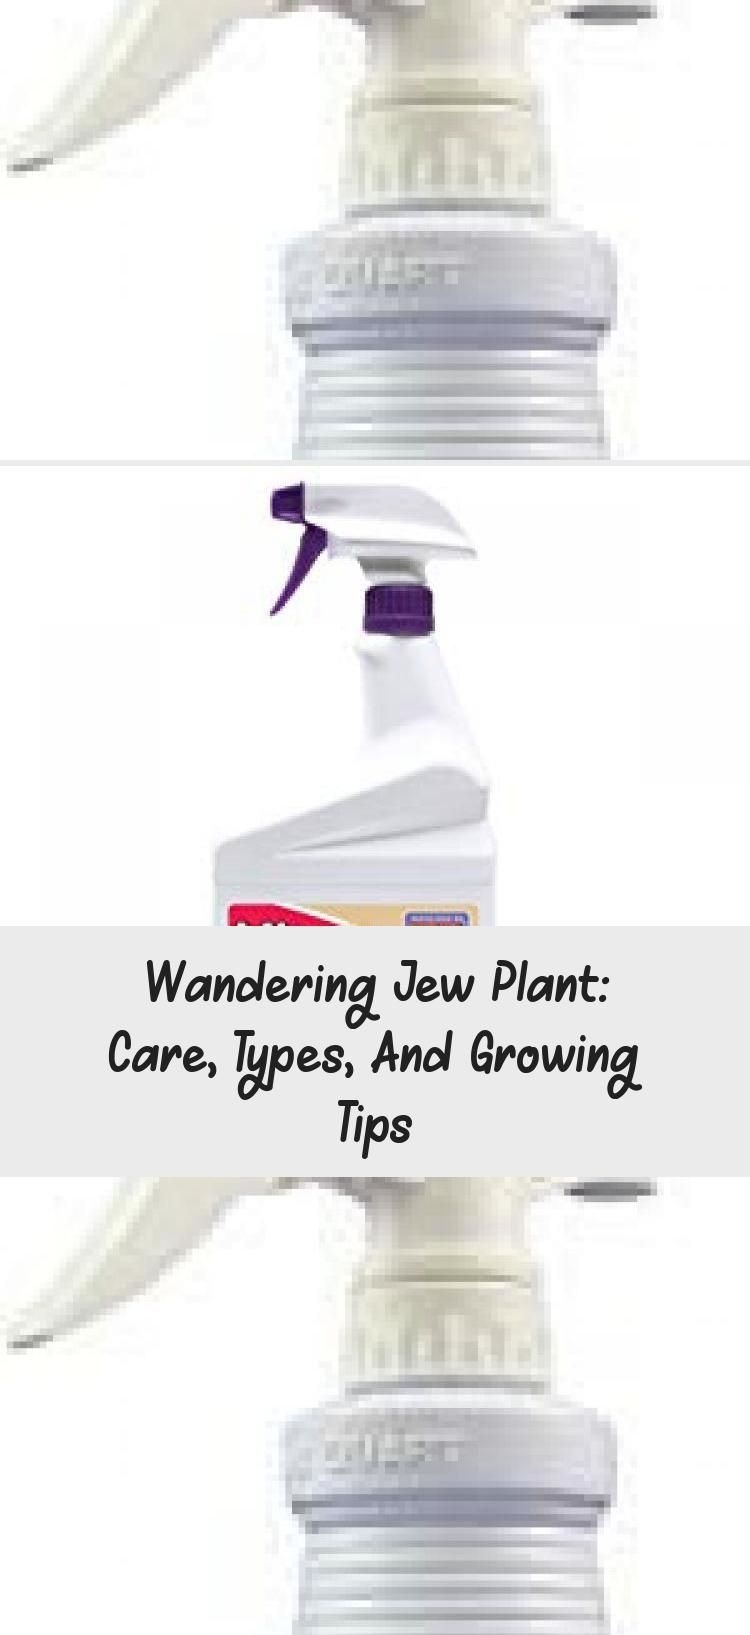 Wandering Jew Plant: Care, Types, And Growing Tips #wanderingjewplant The wandering jew plant is not a single plant — it refers to 3 different types of houseplants! Learn how to grow them in this in-depth care guide. #PlantsFondEcran #PlantsDecoration #PlantsLandscaping #PlantsFlowers #PlantsExterieur #wanderingjewplant